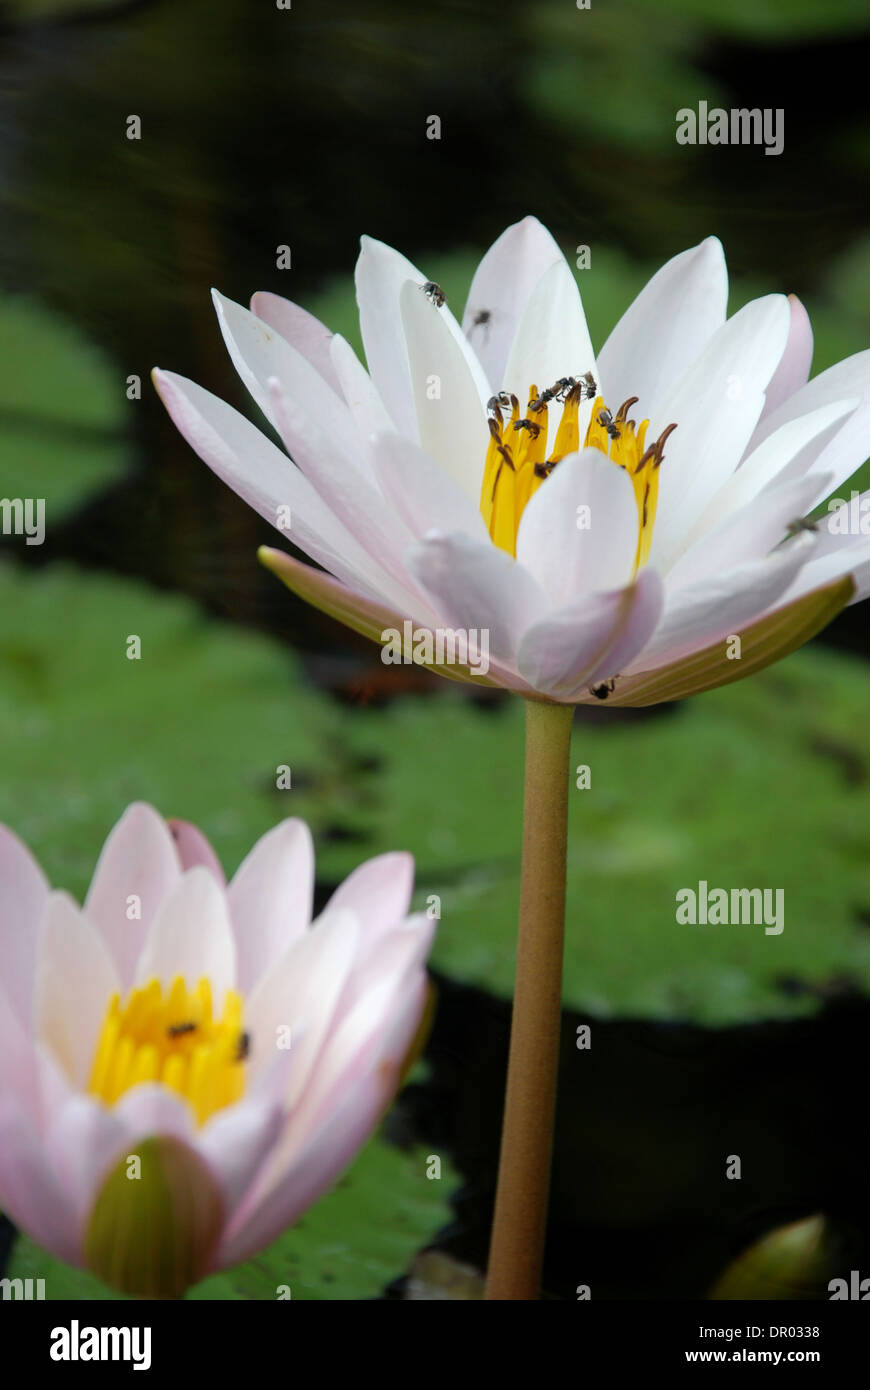 Water Lily Scent Of Asian Exotic Flower Stock Photo 65770636 Alamy